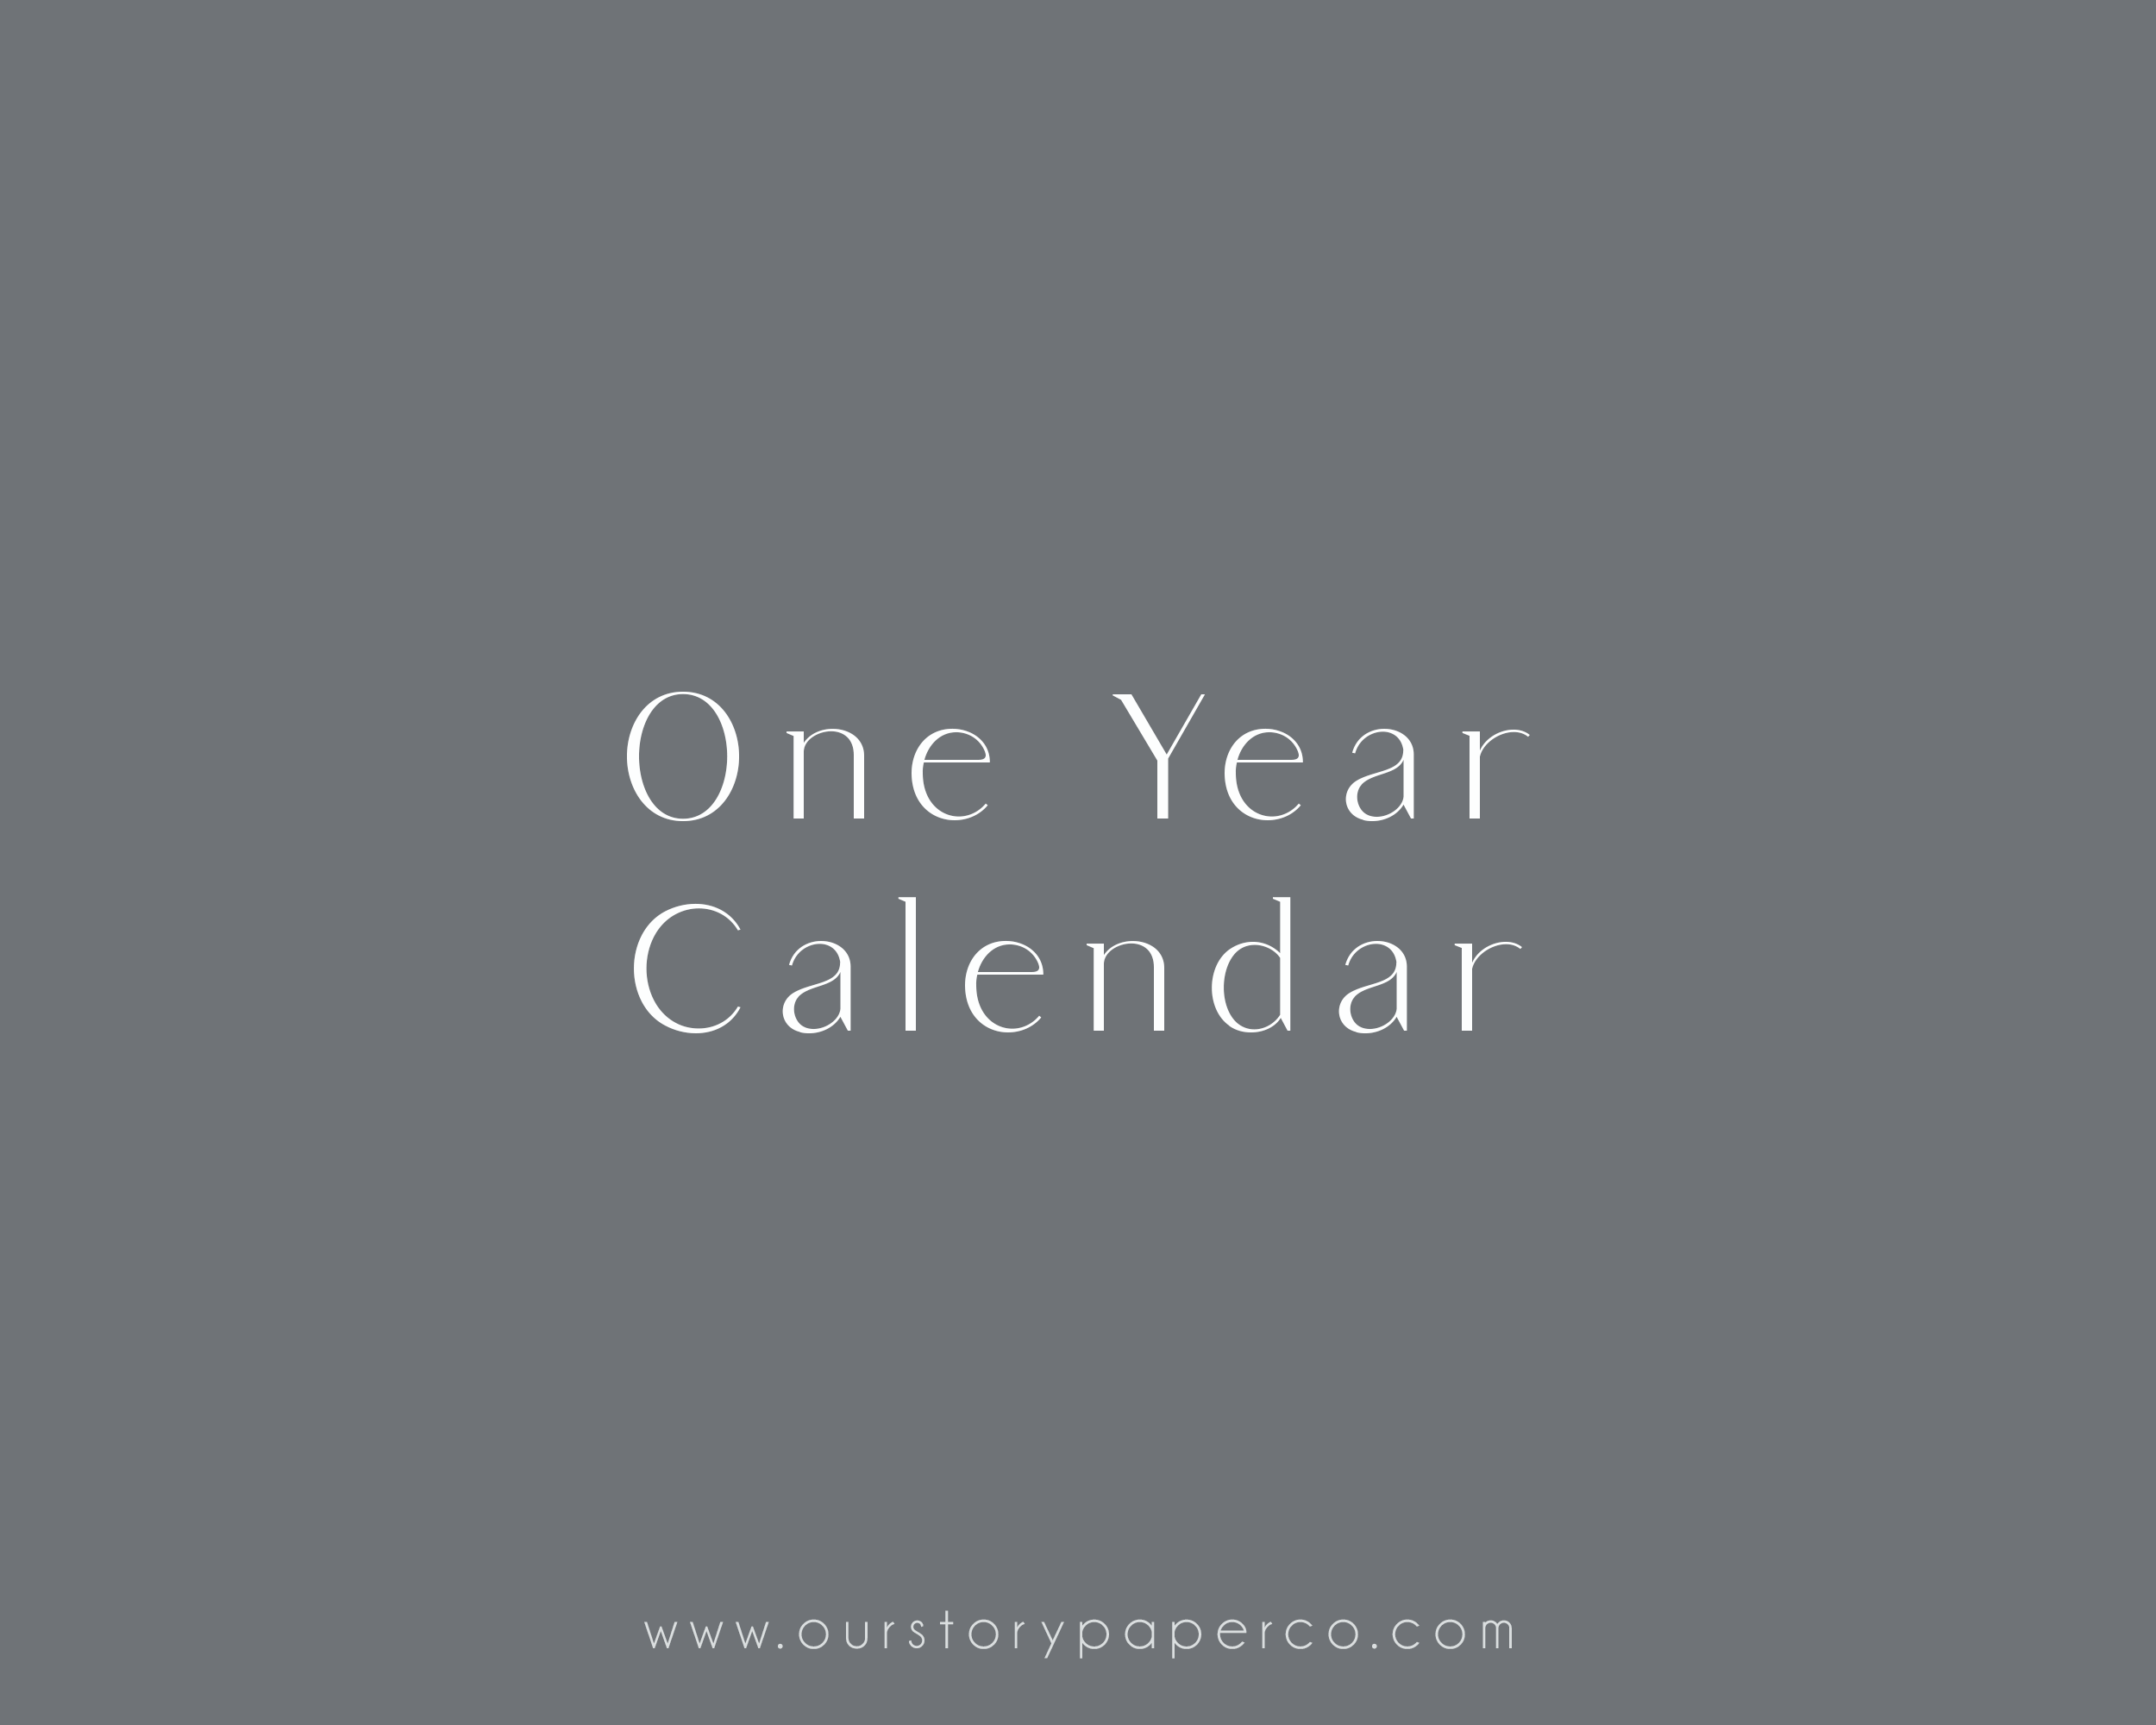 One Year Calendar Pack - Our Story Paper Co.